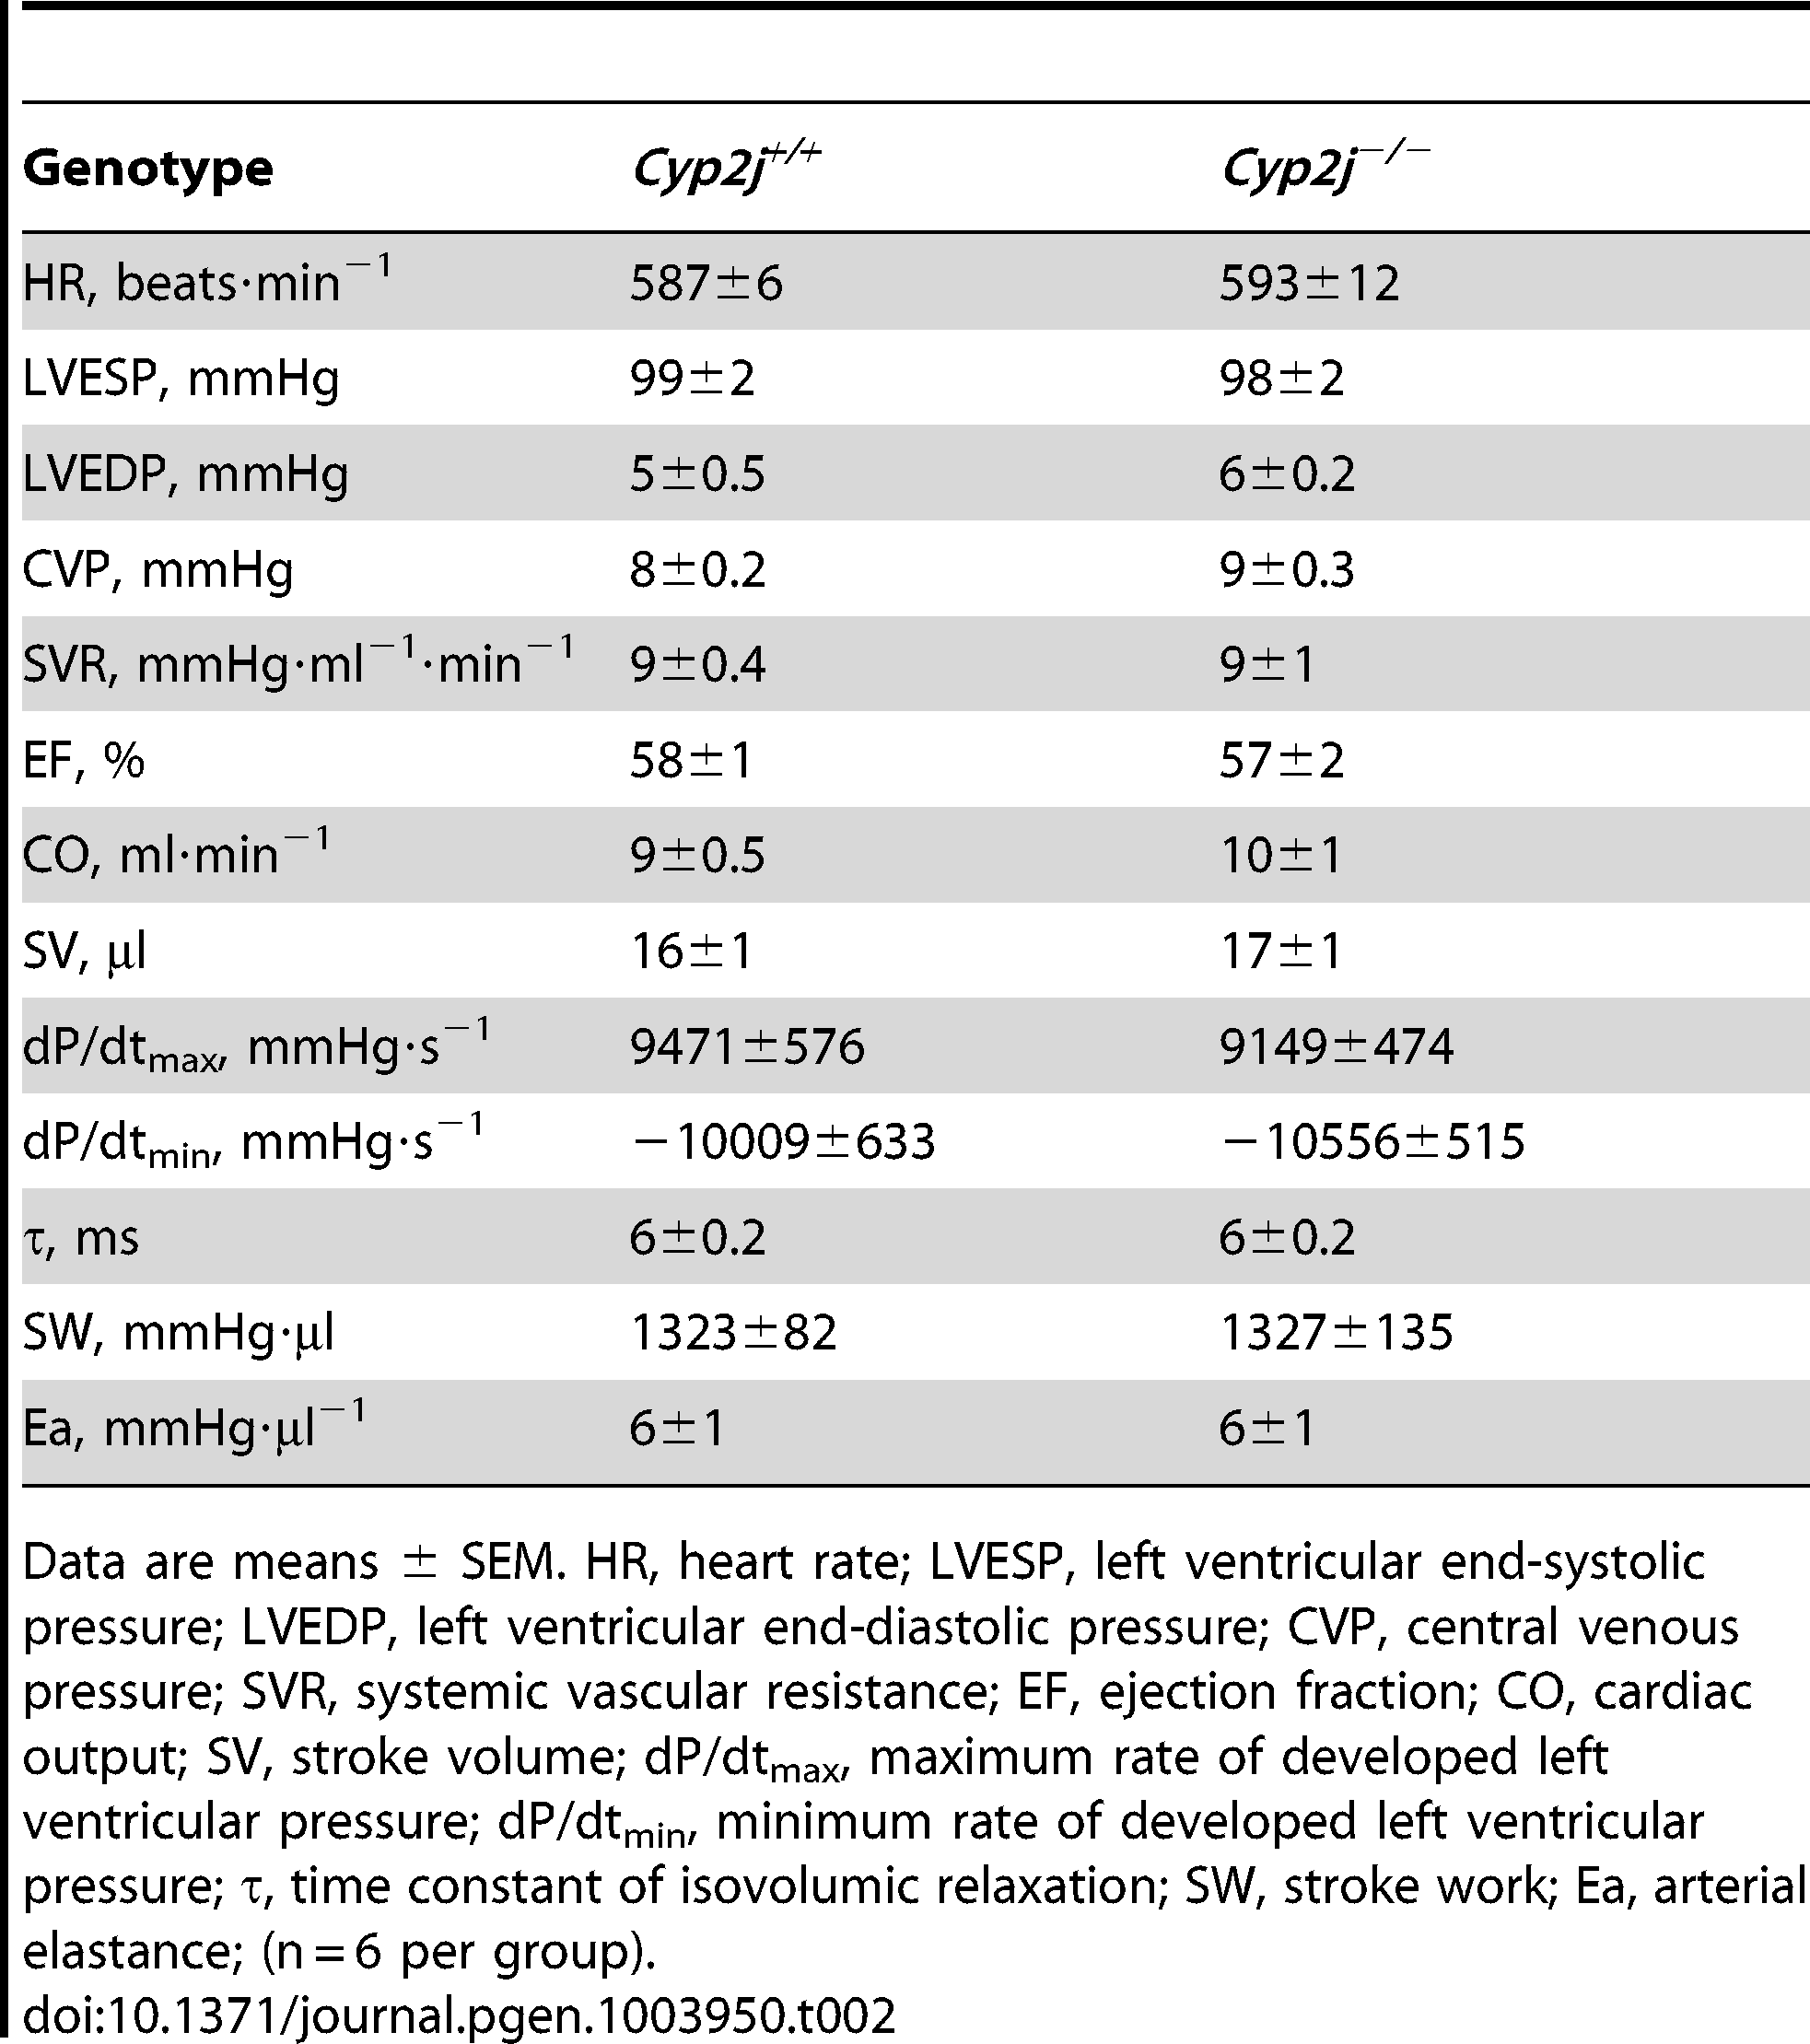 Comparison of systemic hemodynamic measurements in anesthetized <i>Cyp2j<sup>+/+</sup></i> and <i>Cyp2j<sup>−/−</sup></i> mice.